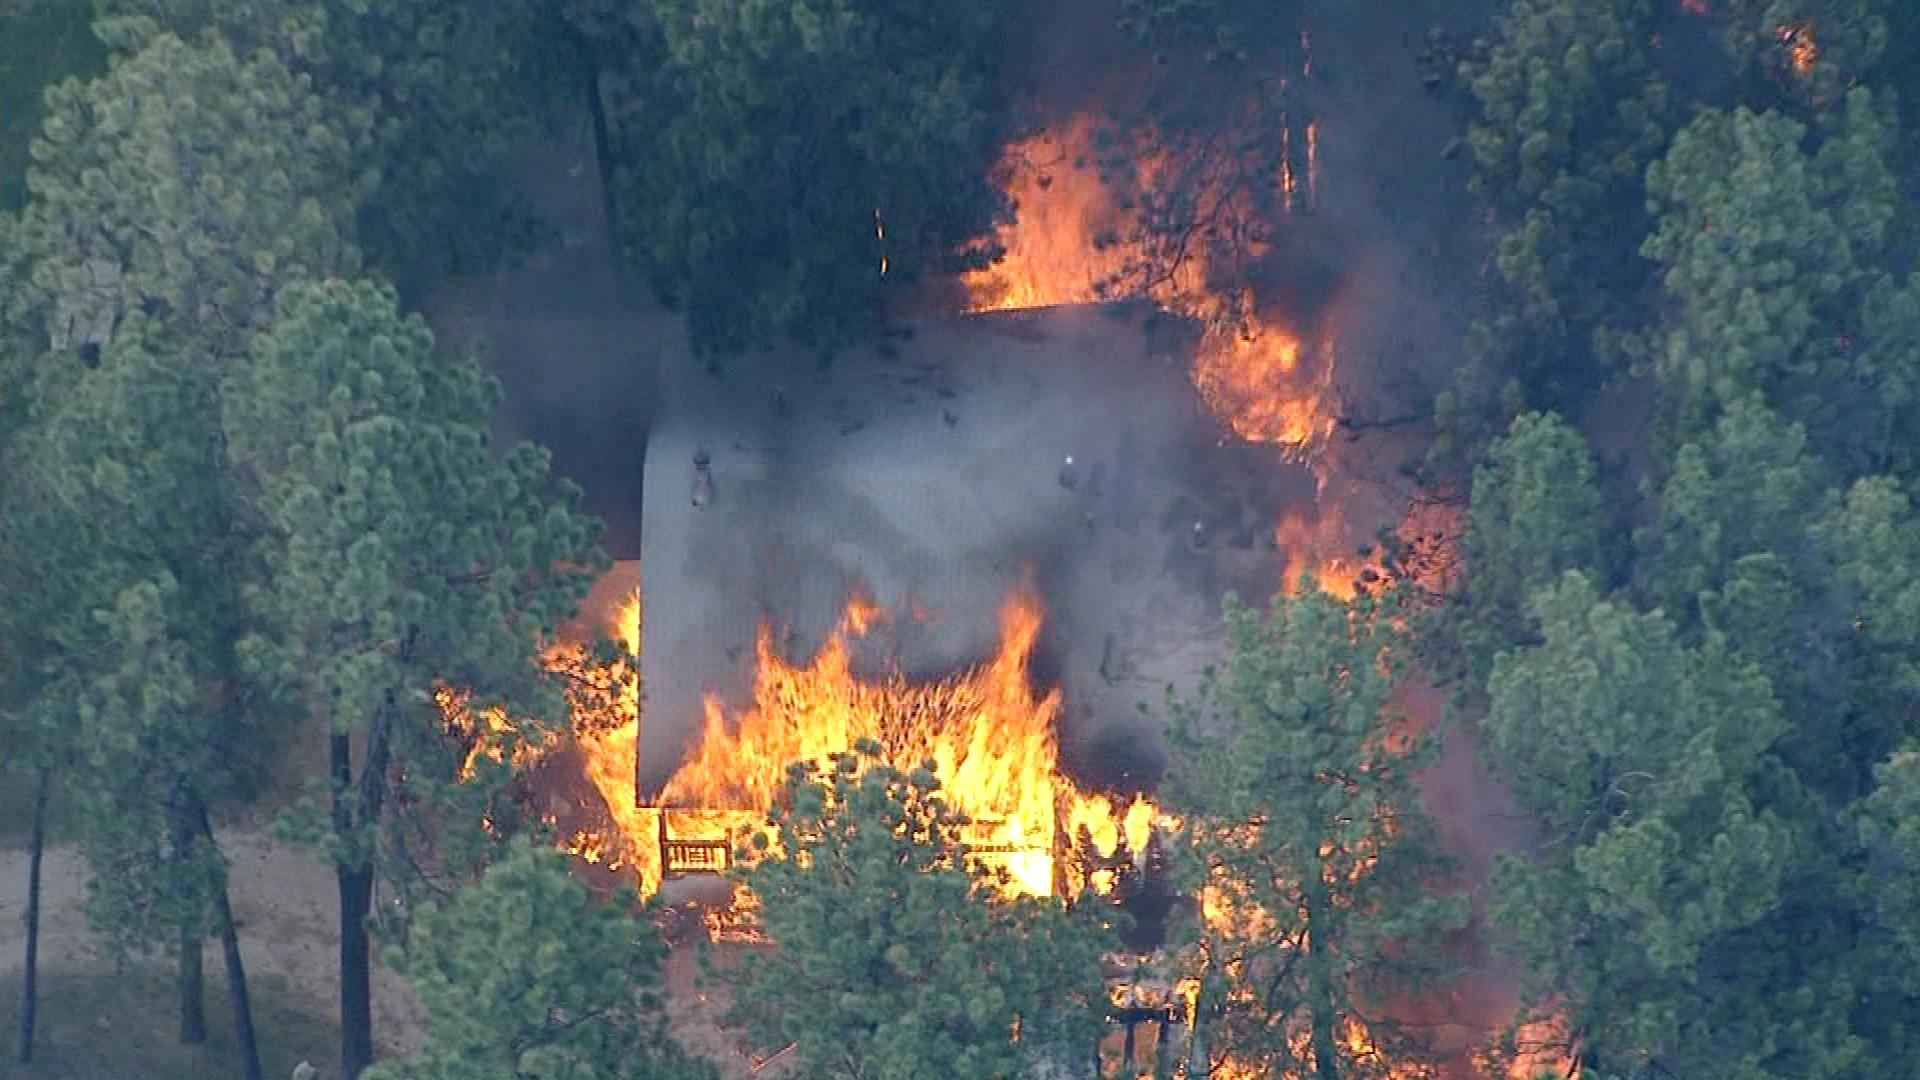 A house burning Wednesday evening (credit: CBS)